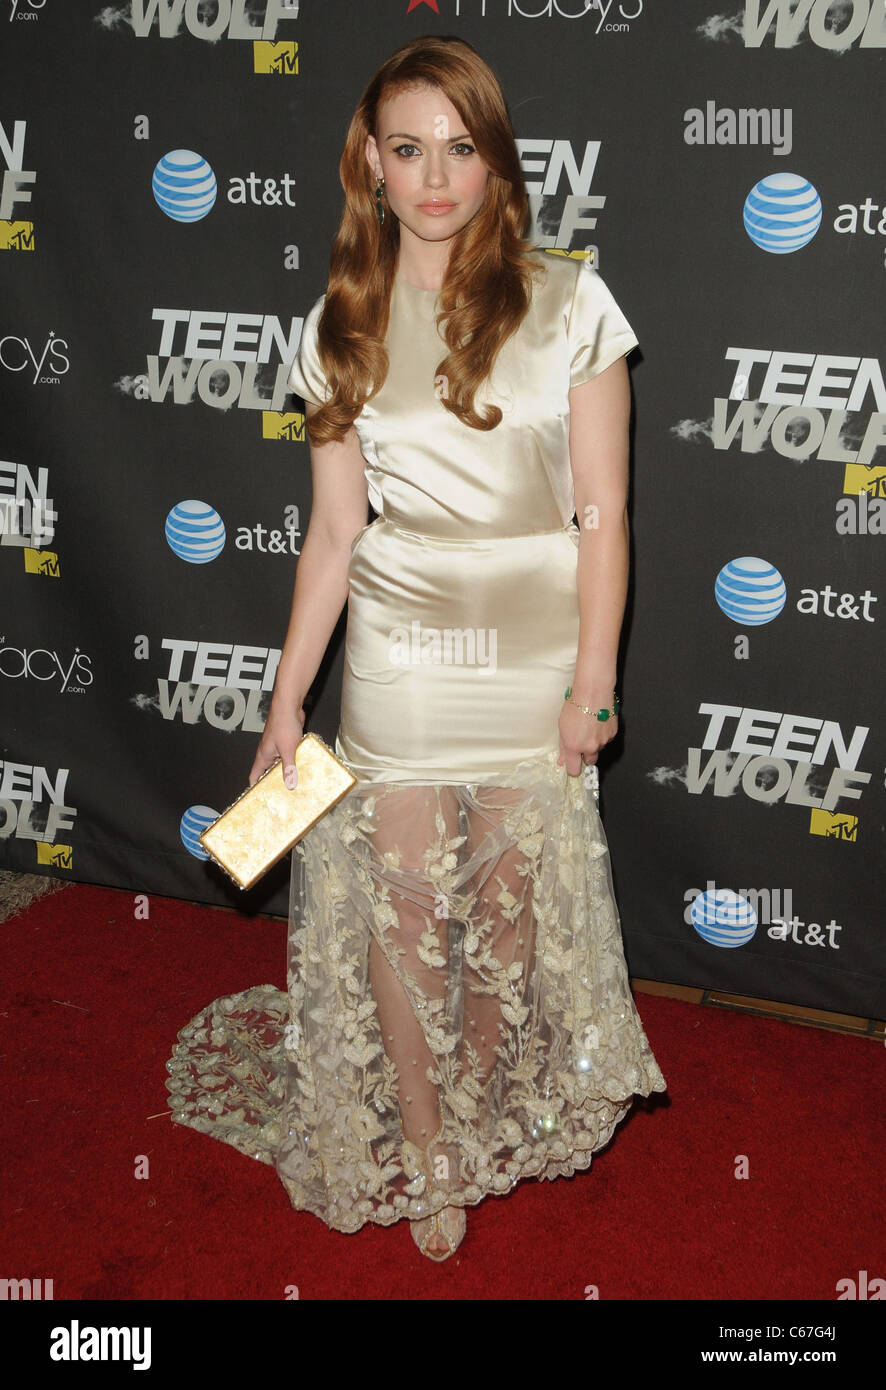 Holland Roden at arrivals for TEEN WOLF Premiere Party, Roosevelt Hotel, Los Angeles, CA May 25, 2011. Photo By: - Stock Image